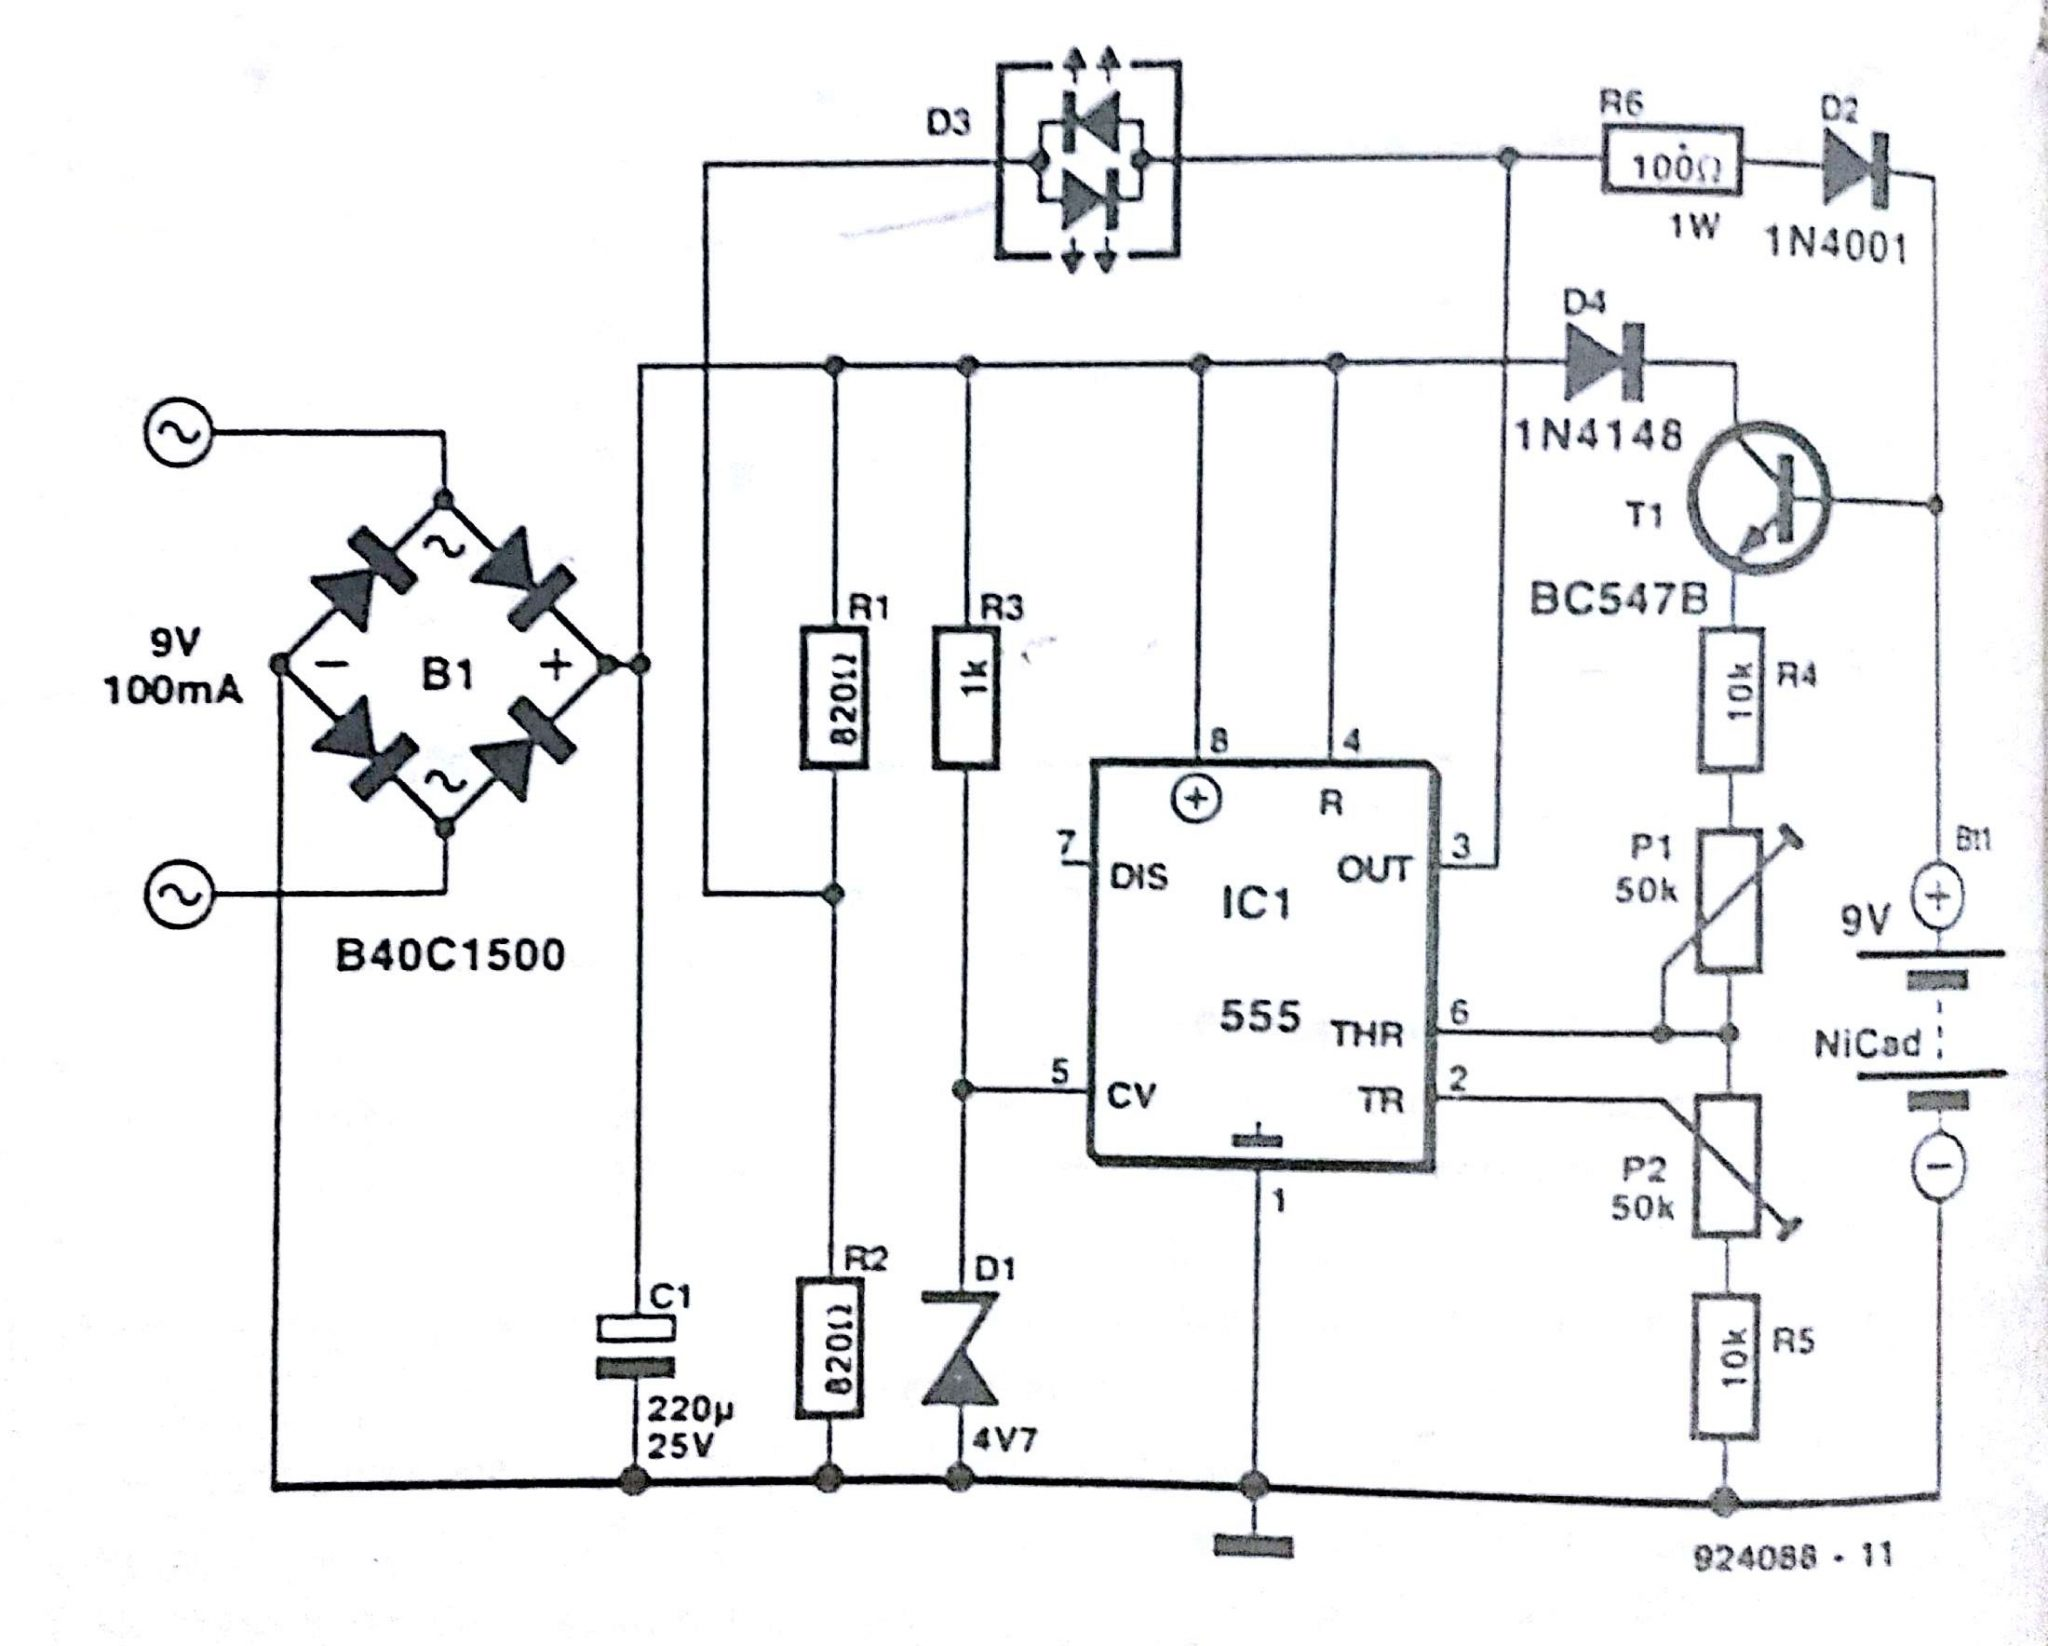 Automatic nicd battery charger circuit diagram nicd battery charger ccuart Image collections